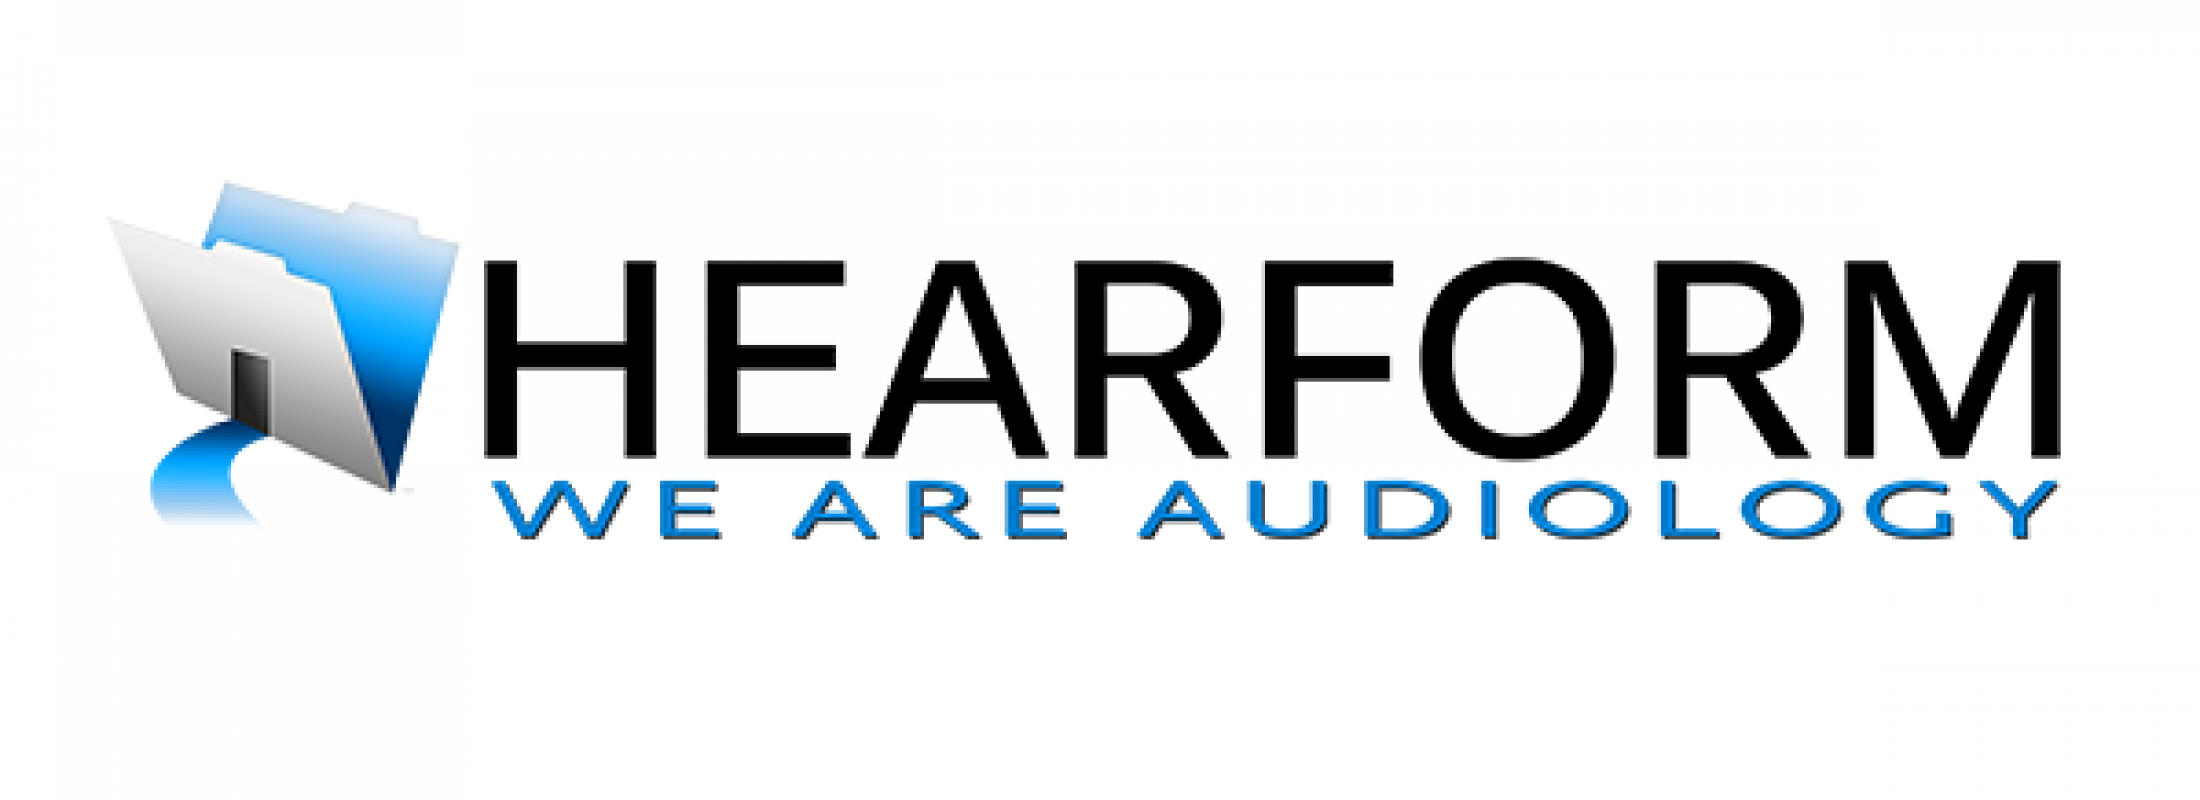 Hearform-Audiology